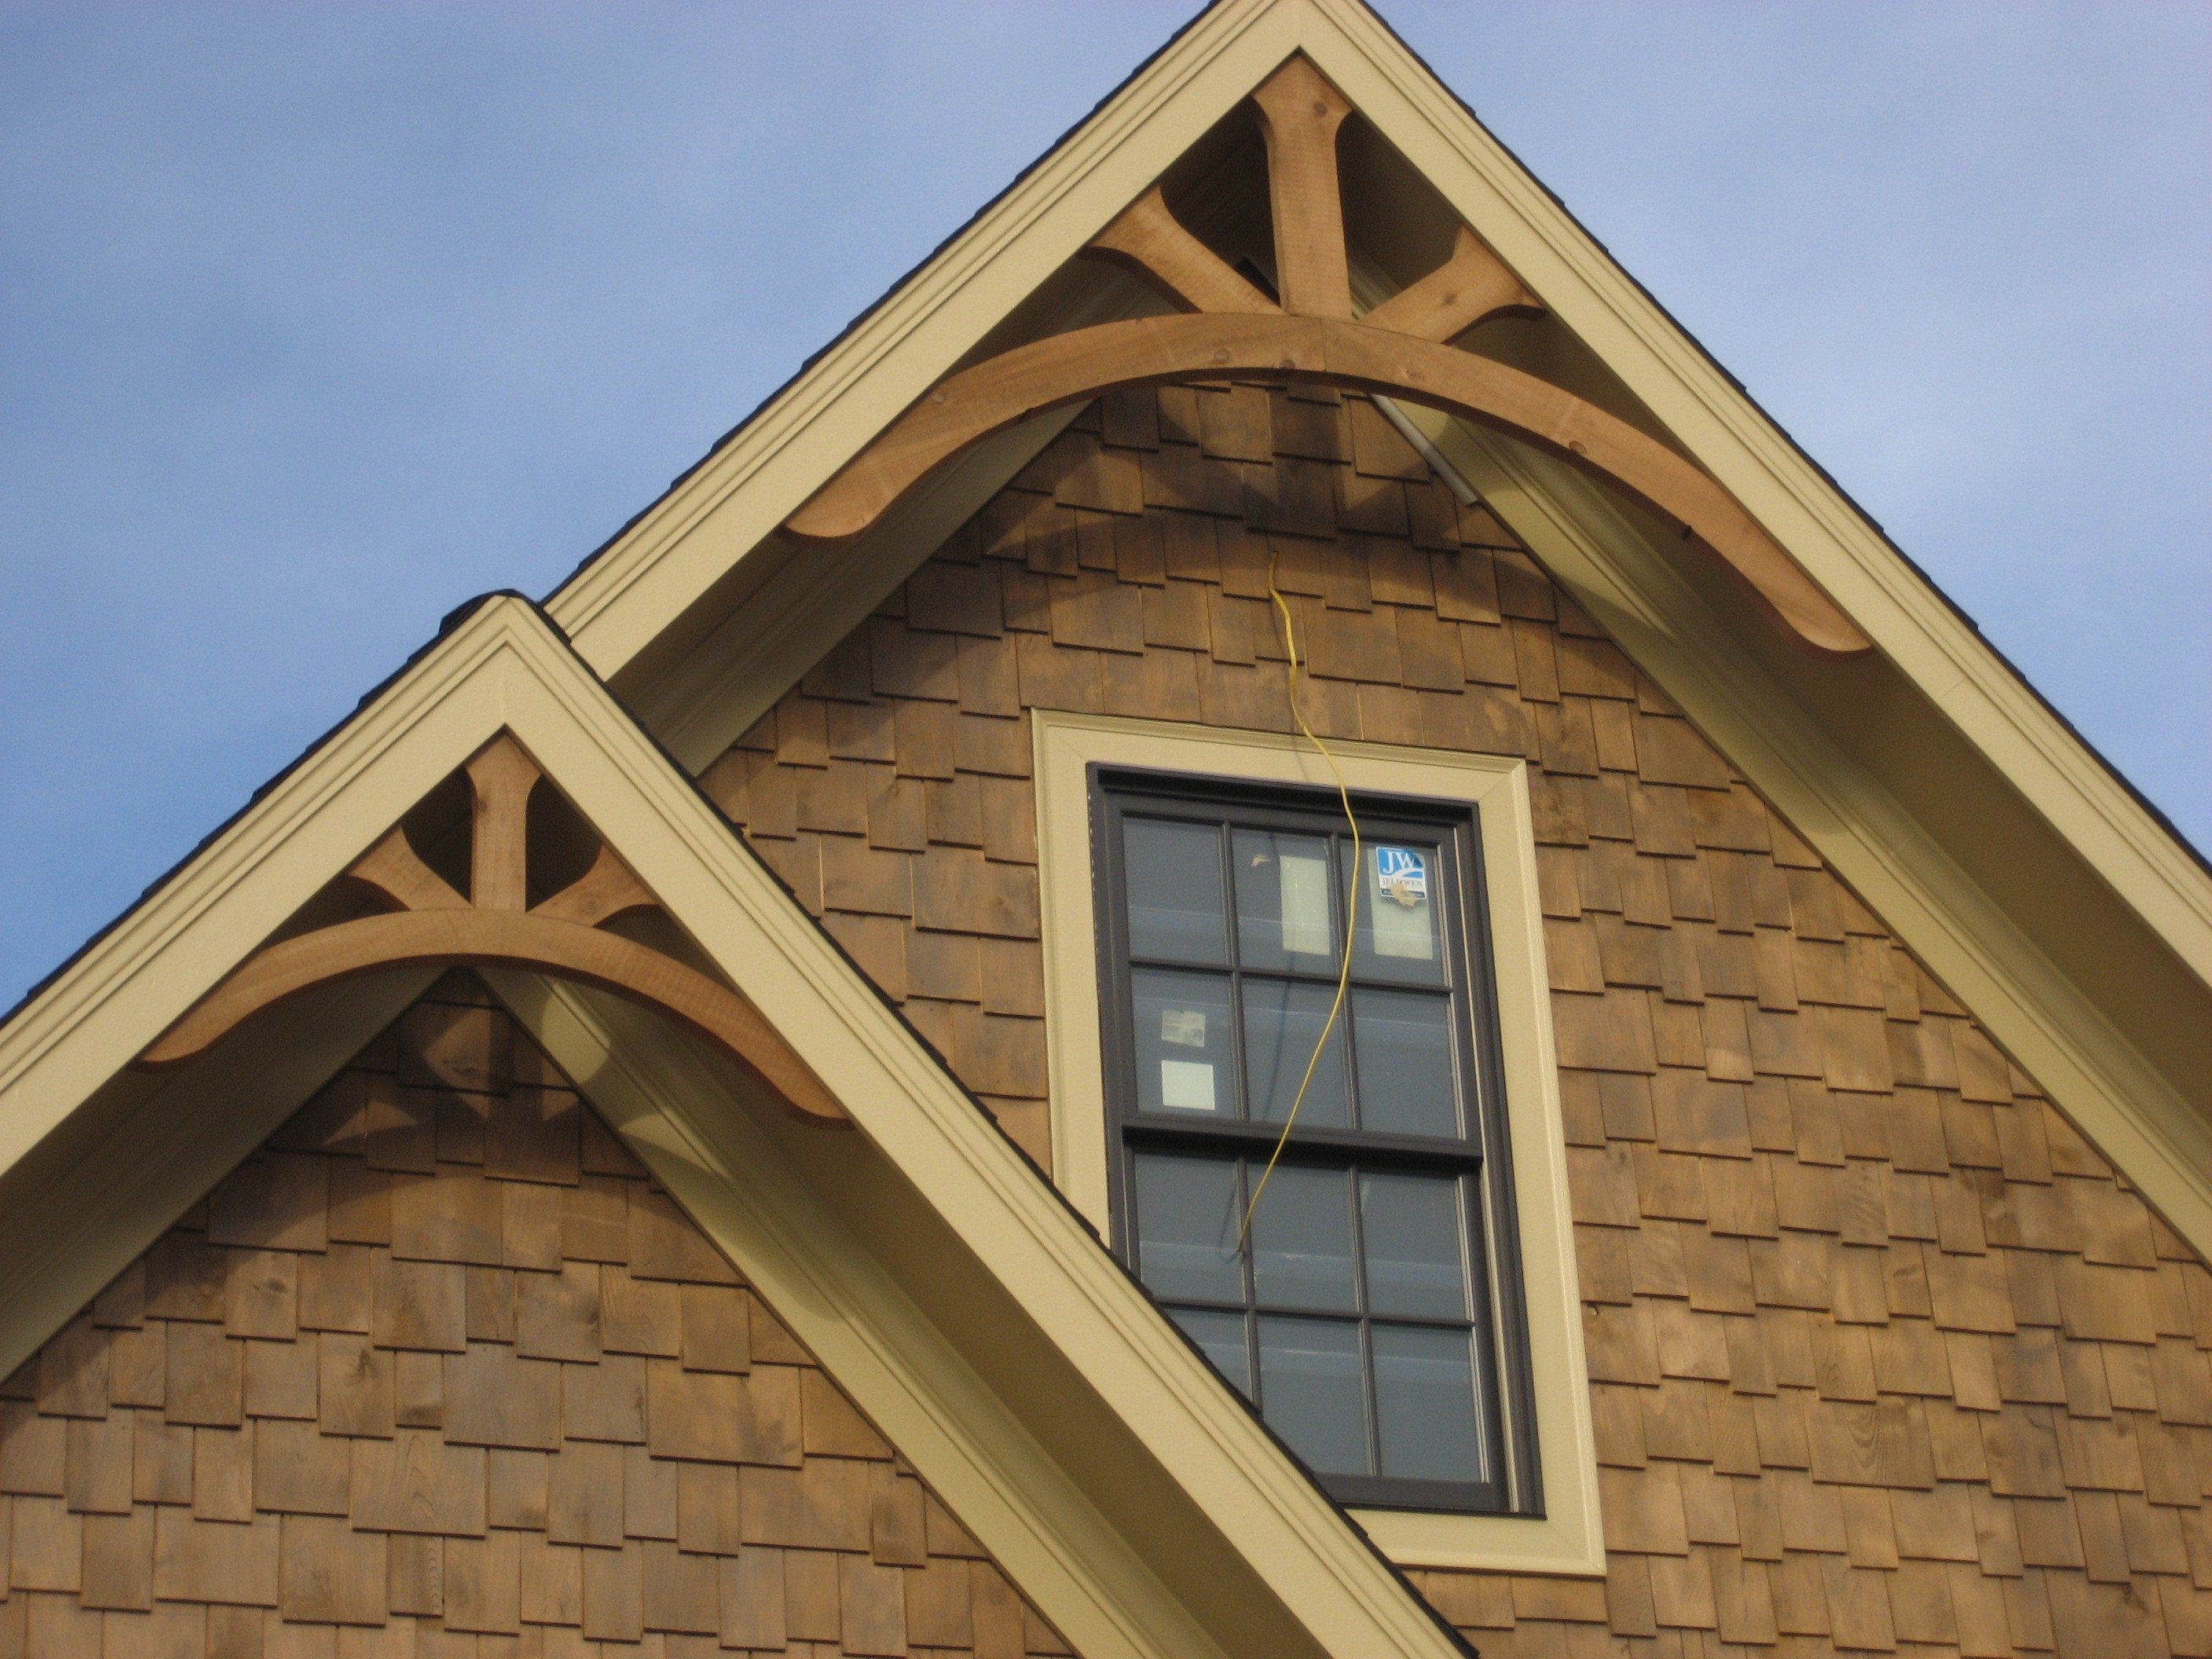 Gable Arches in 2019 | Products | House paint exterior, Roof ... on back porch roof designs, butterfly roof house designs, curved roof house designs, gate house designs, scissor roof truss designs, flat house designs, pinoy houses designs home designs, tile roof house designs, gable architecture, skillion roof house designs, flat roof home designs, peak roof house designs, water table house designs, diy roof truss designs, bay house designs, a-frame roof house designs, gambrel home designs, attic roof trusses designs, house house designs, gable end designs,